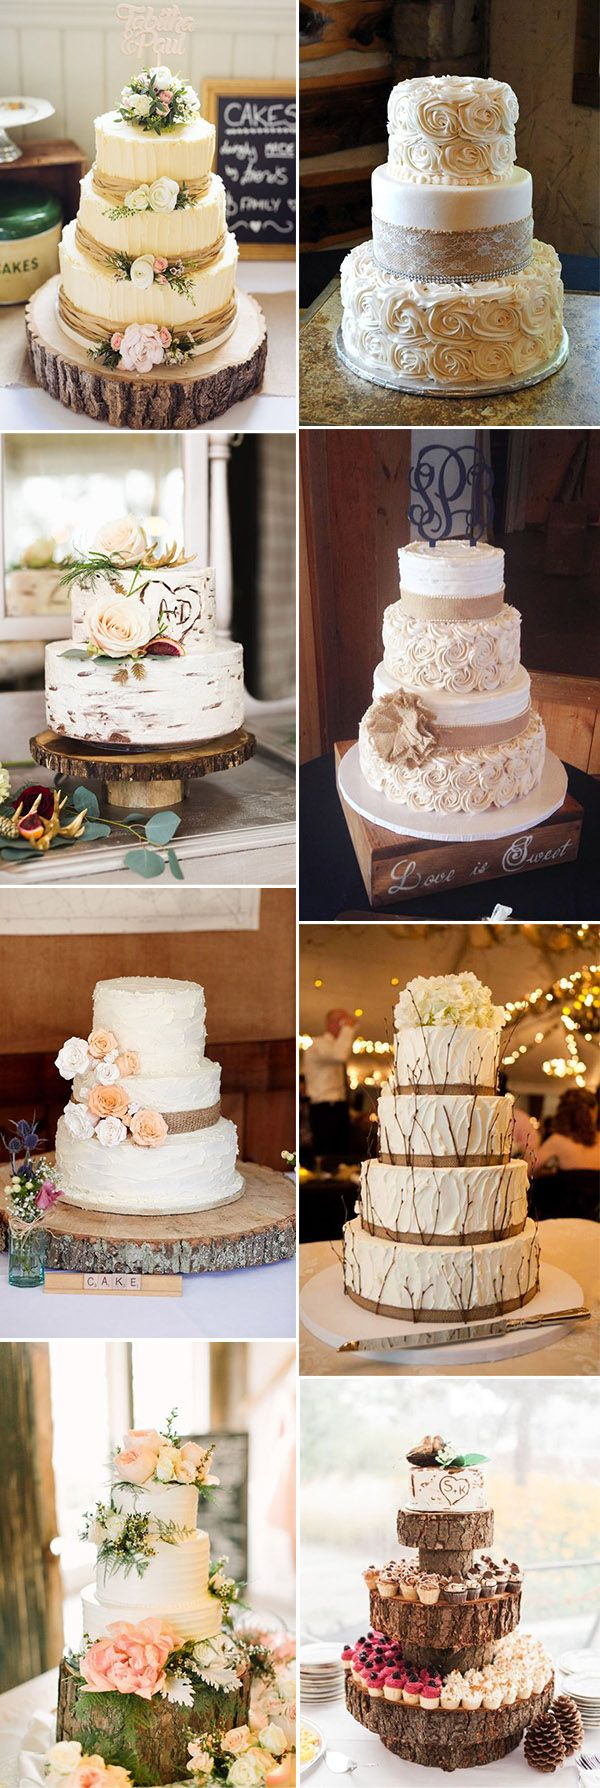 rustic wedding cake pics 50 worthy wedding cake ideas for your special day 19547